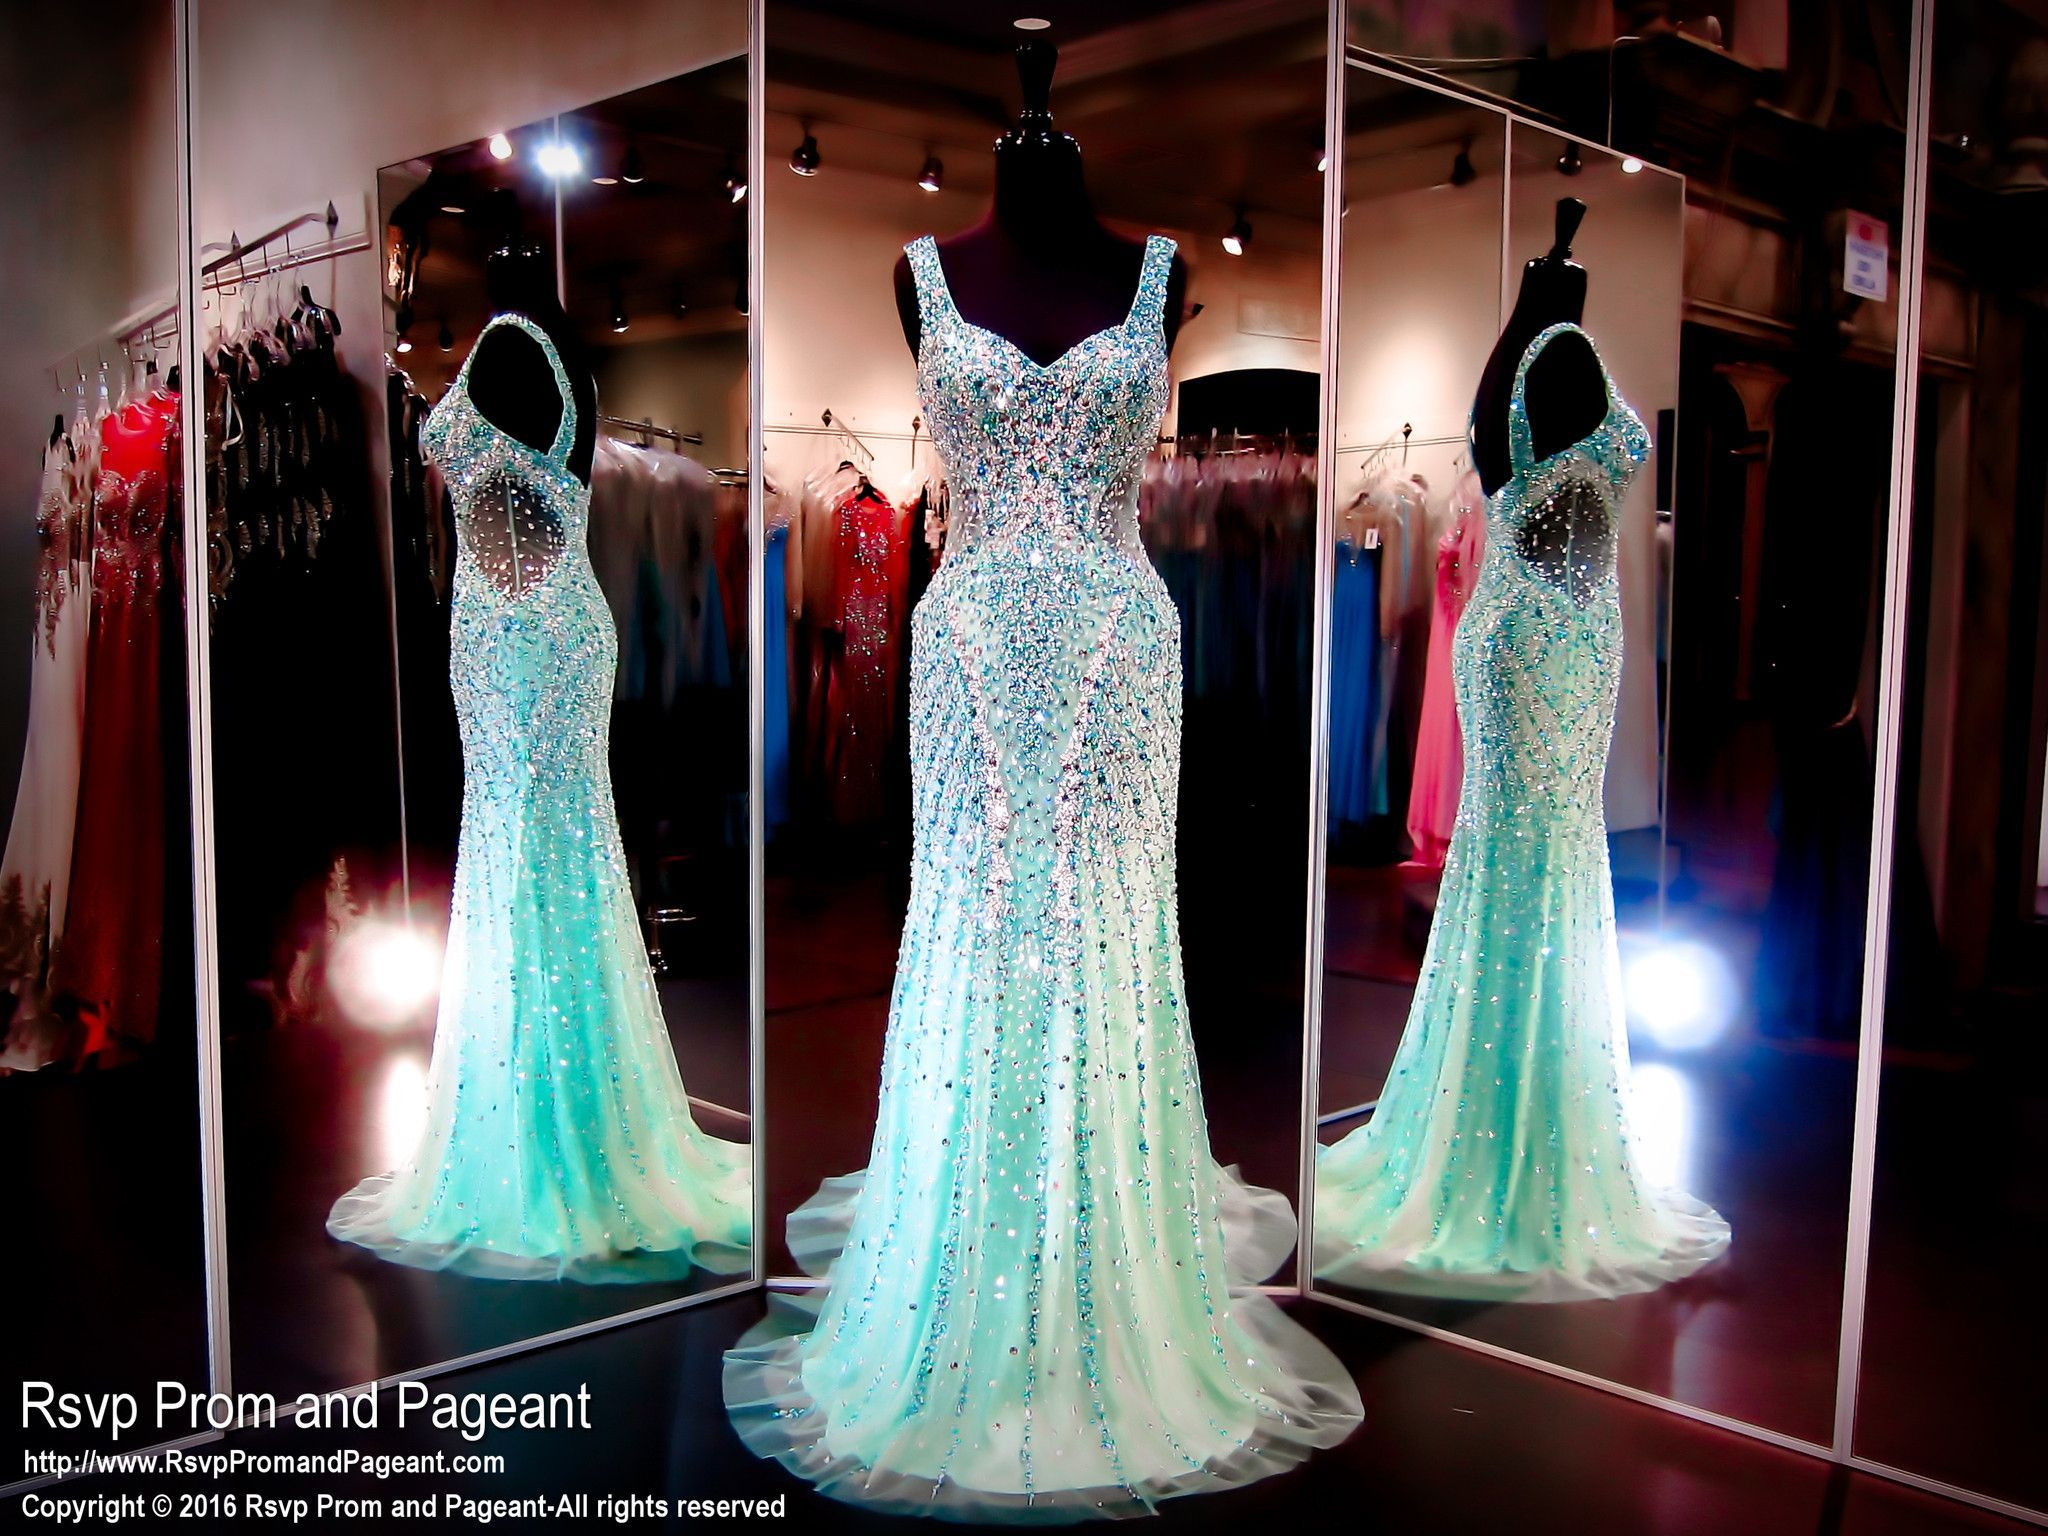 Teal/Nude Mermaid Evening Gown-Sparkling Crystals-Straps ...